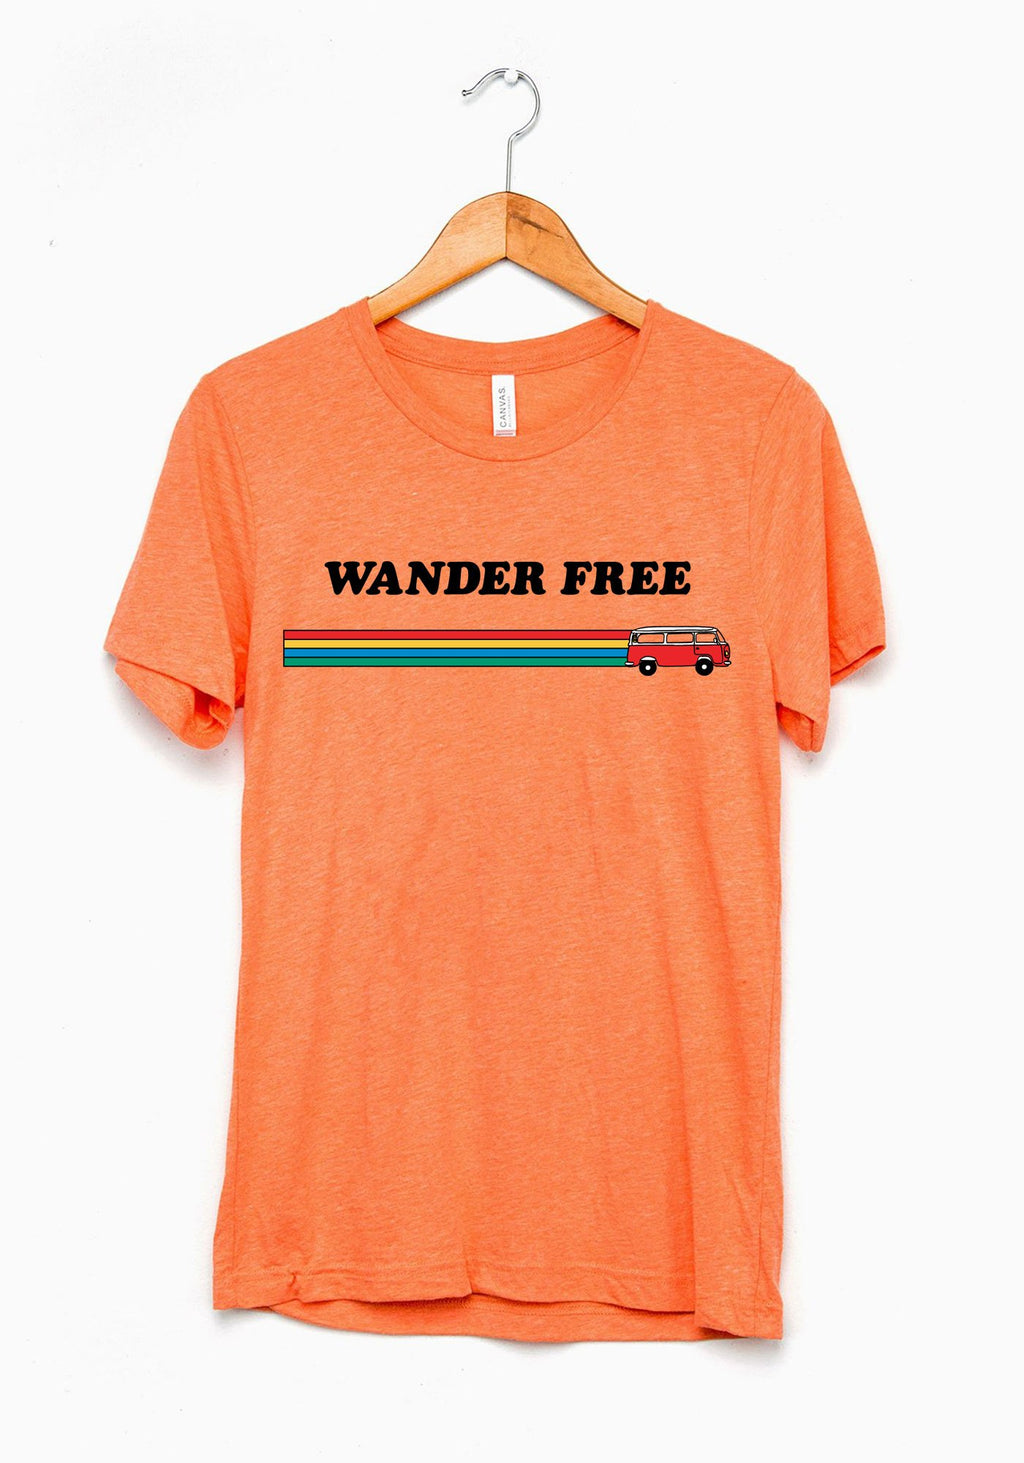 Wander Free Tee / womens graphic tees / 70s 60s vintage style t shirt / wanderlust travel shirt / bus van life